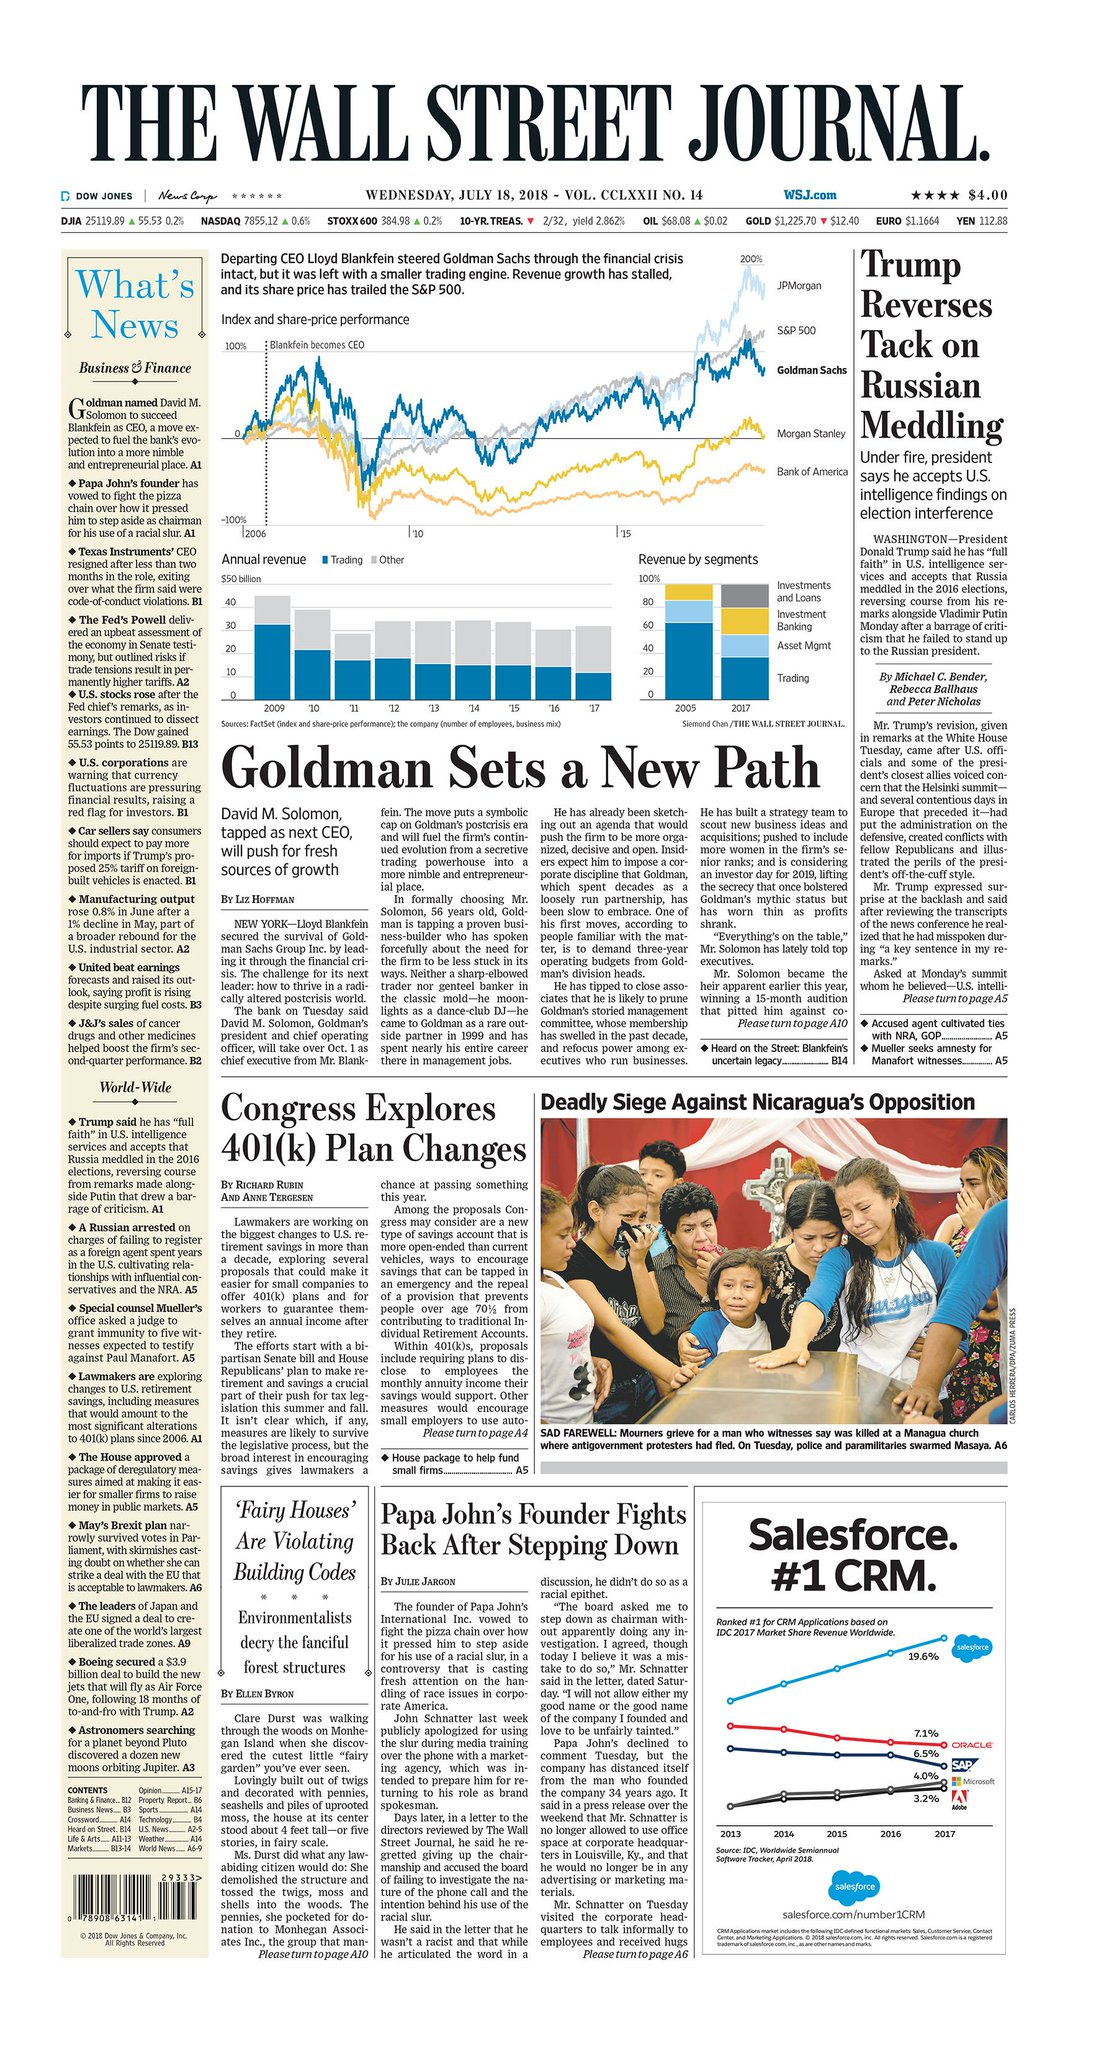 Take an early look at the front page of The Wall Street Journal https://t.co/5xQPDPcm8q https://t.co/0pP7WTO5Cd